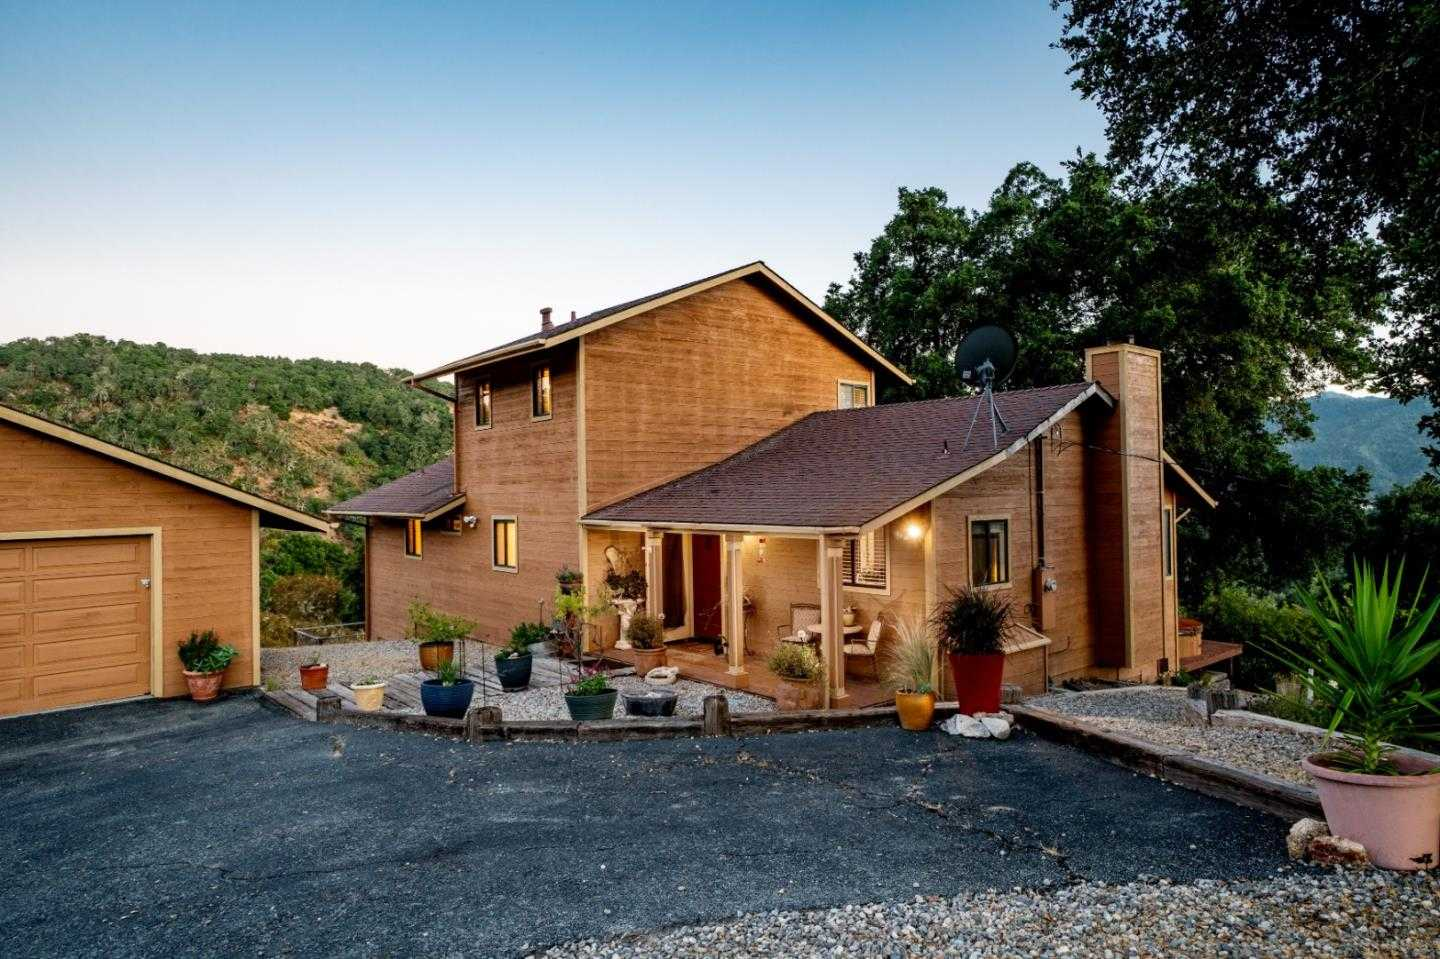 $680,000 - 3Br/3Ba -  for Sale in Carmel Valley